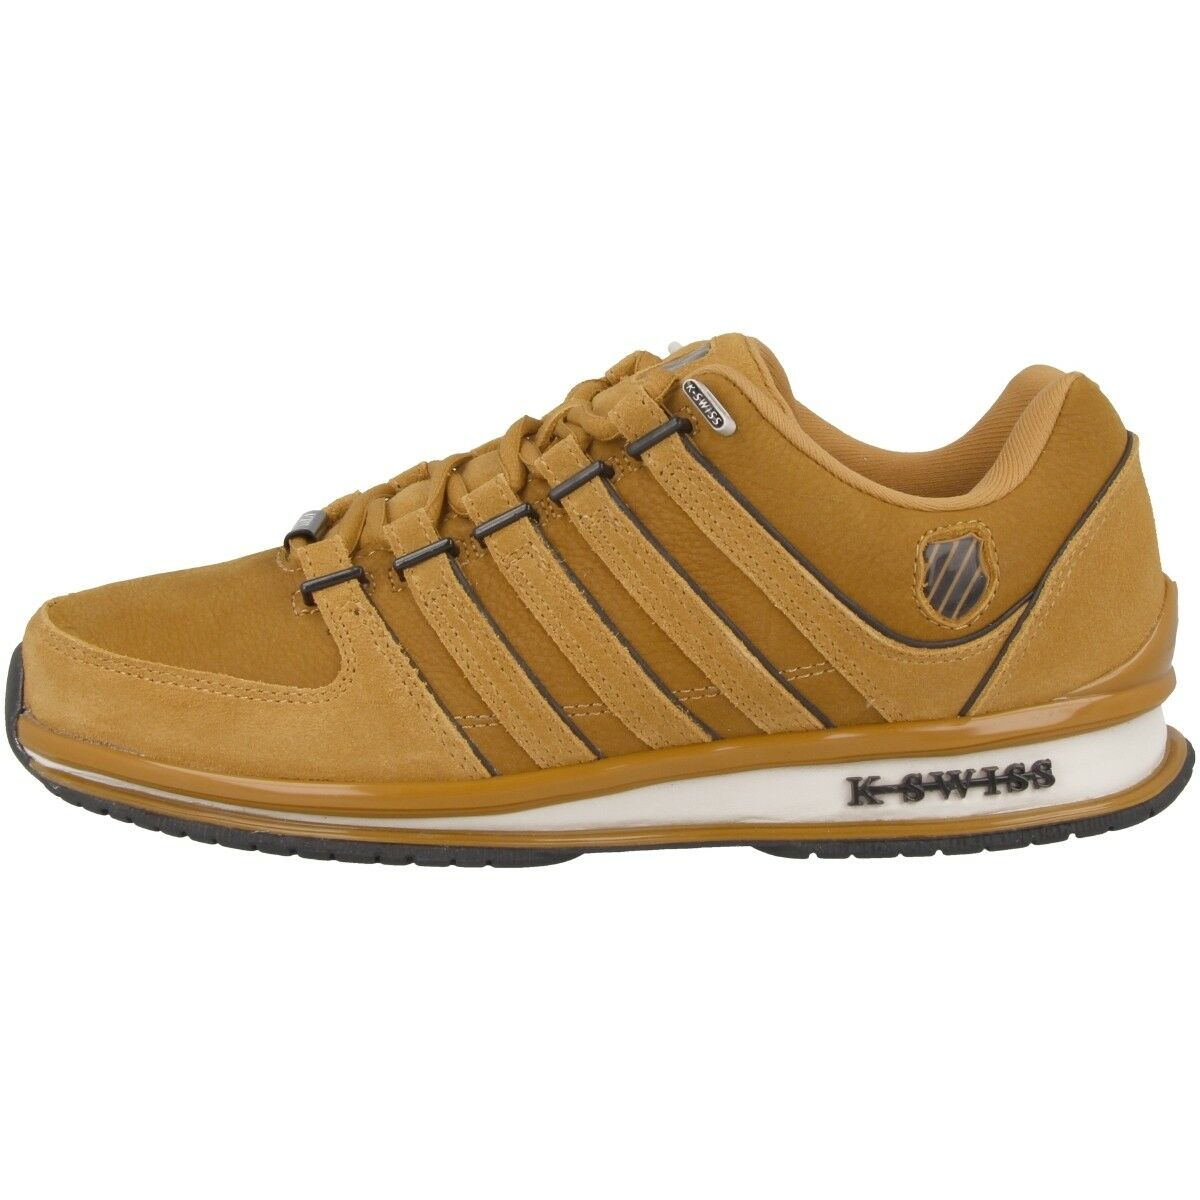 K-Swiss Rinzler sp cortos trae-back-style SMU zapatos Bone marrón 02283-211